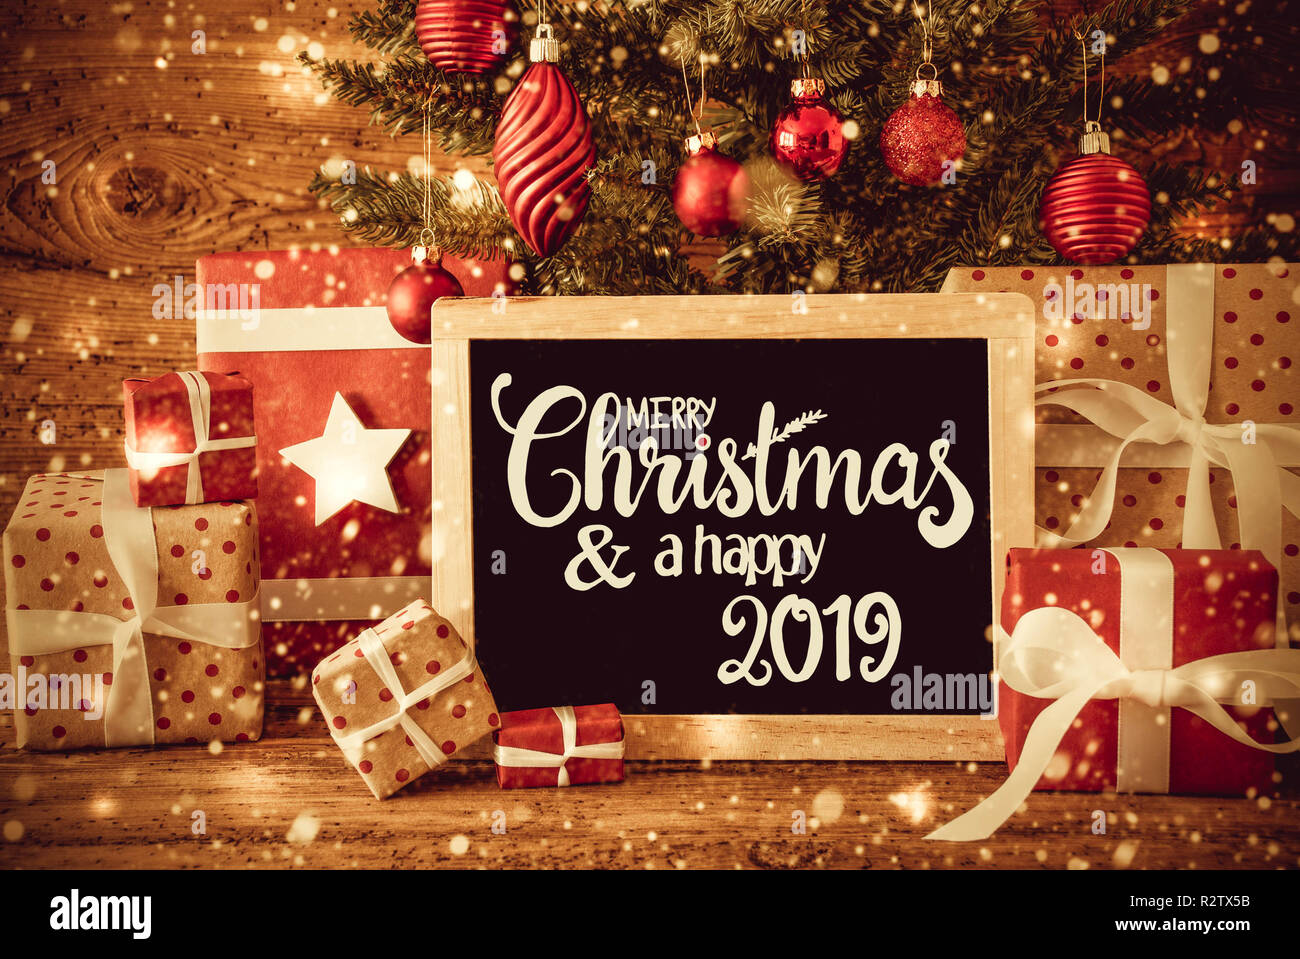 Merry Christmas Images 2019.Bright Tree Gifts Calligraphy Merry Christmas And A Happy